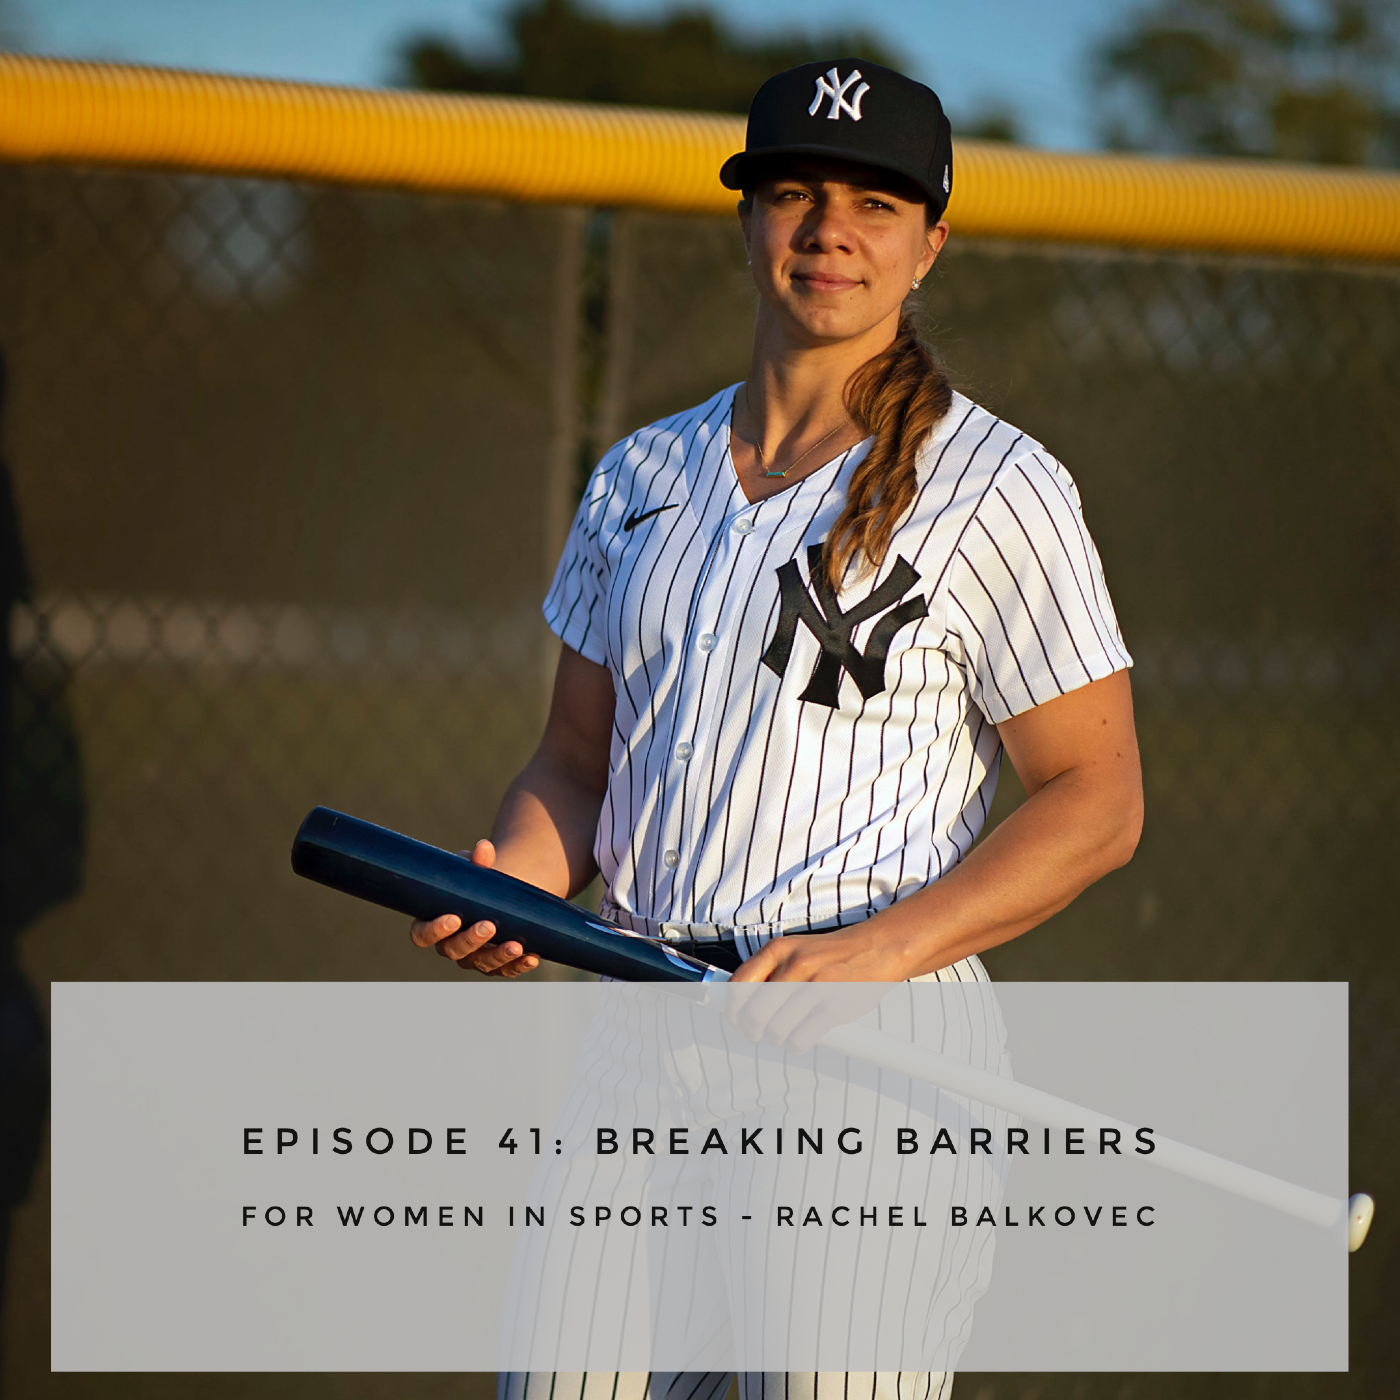 Episode 41: Breaking Barriers for Women in Sport - Rachel Balkovec